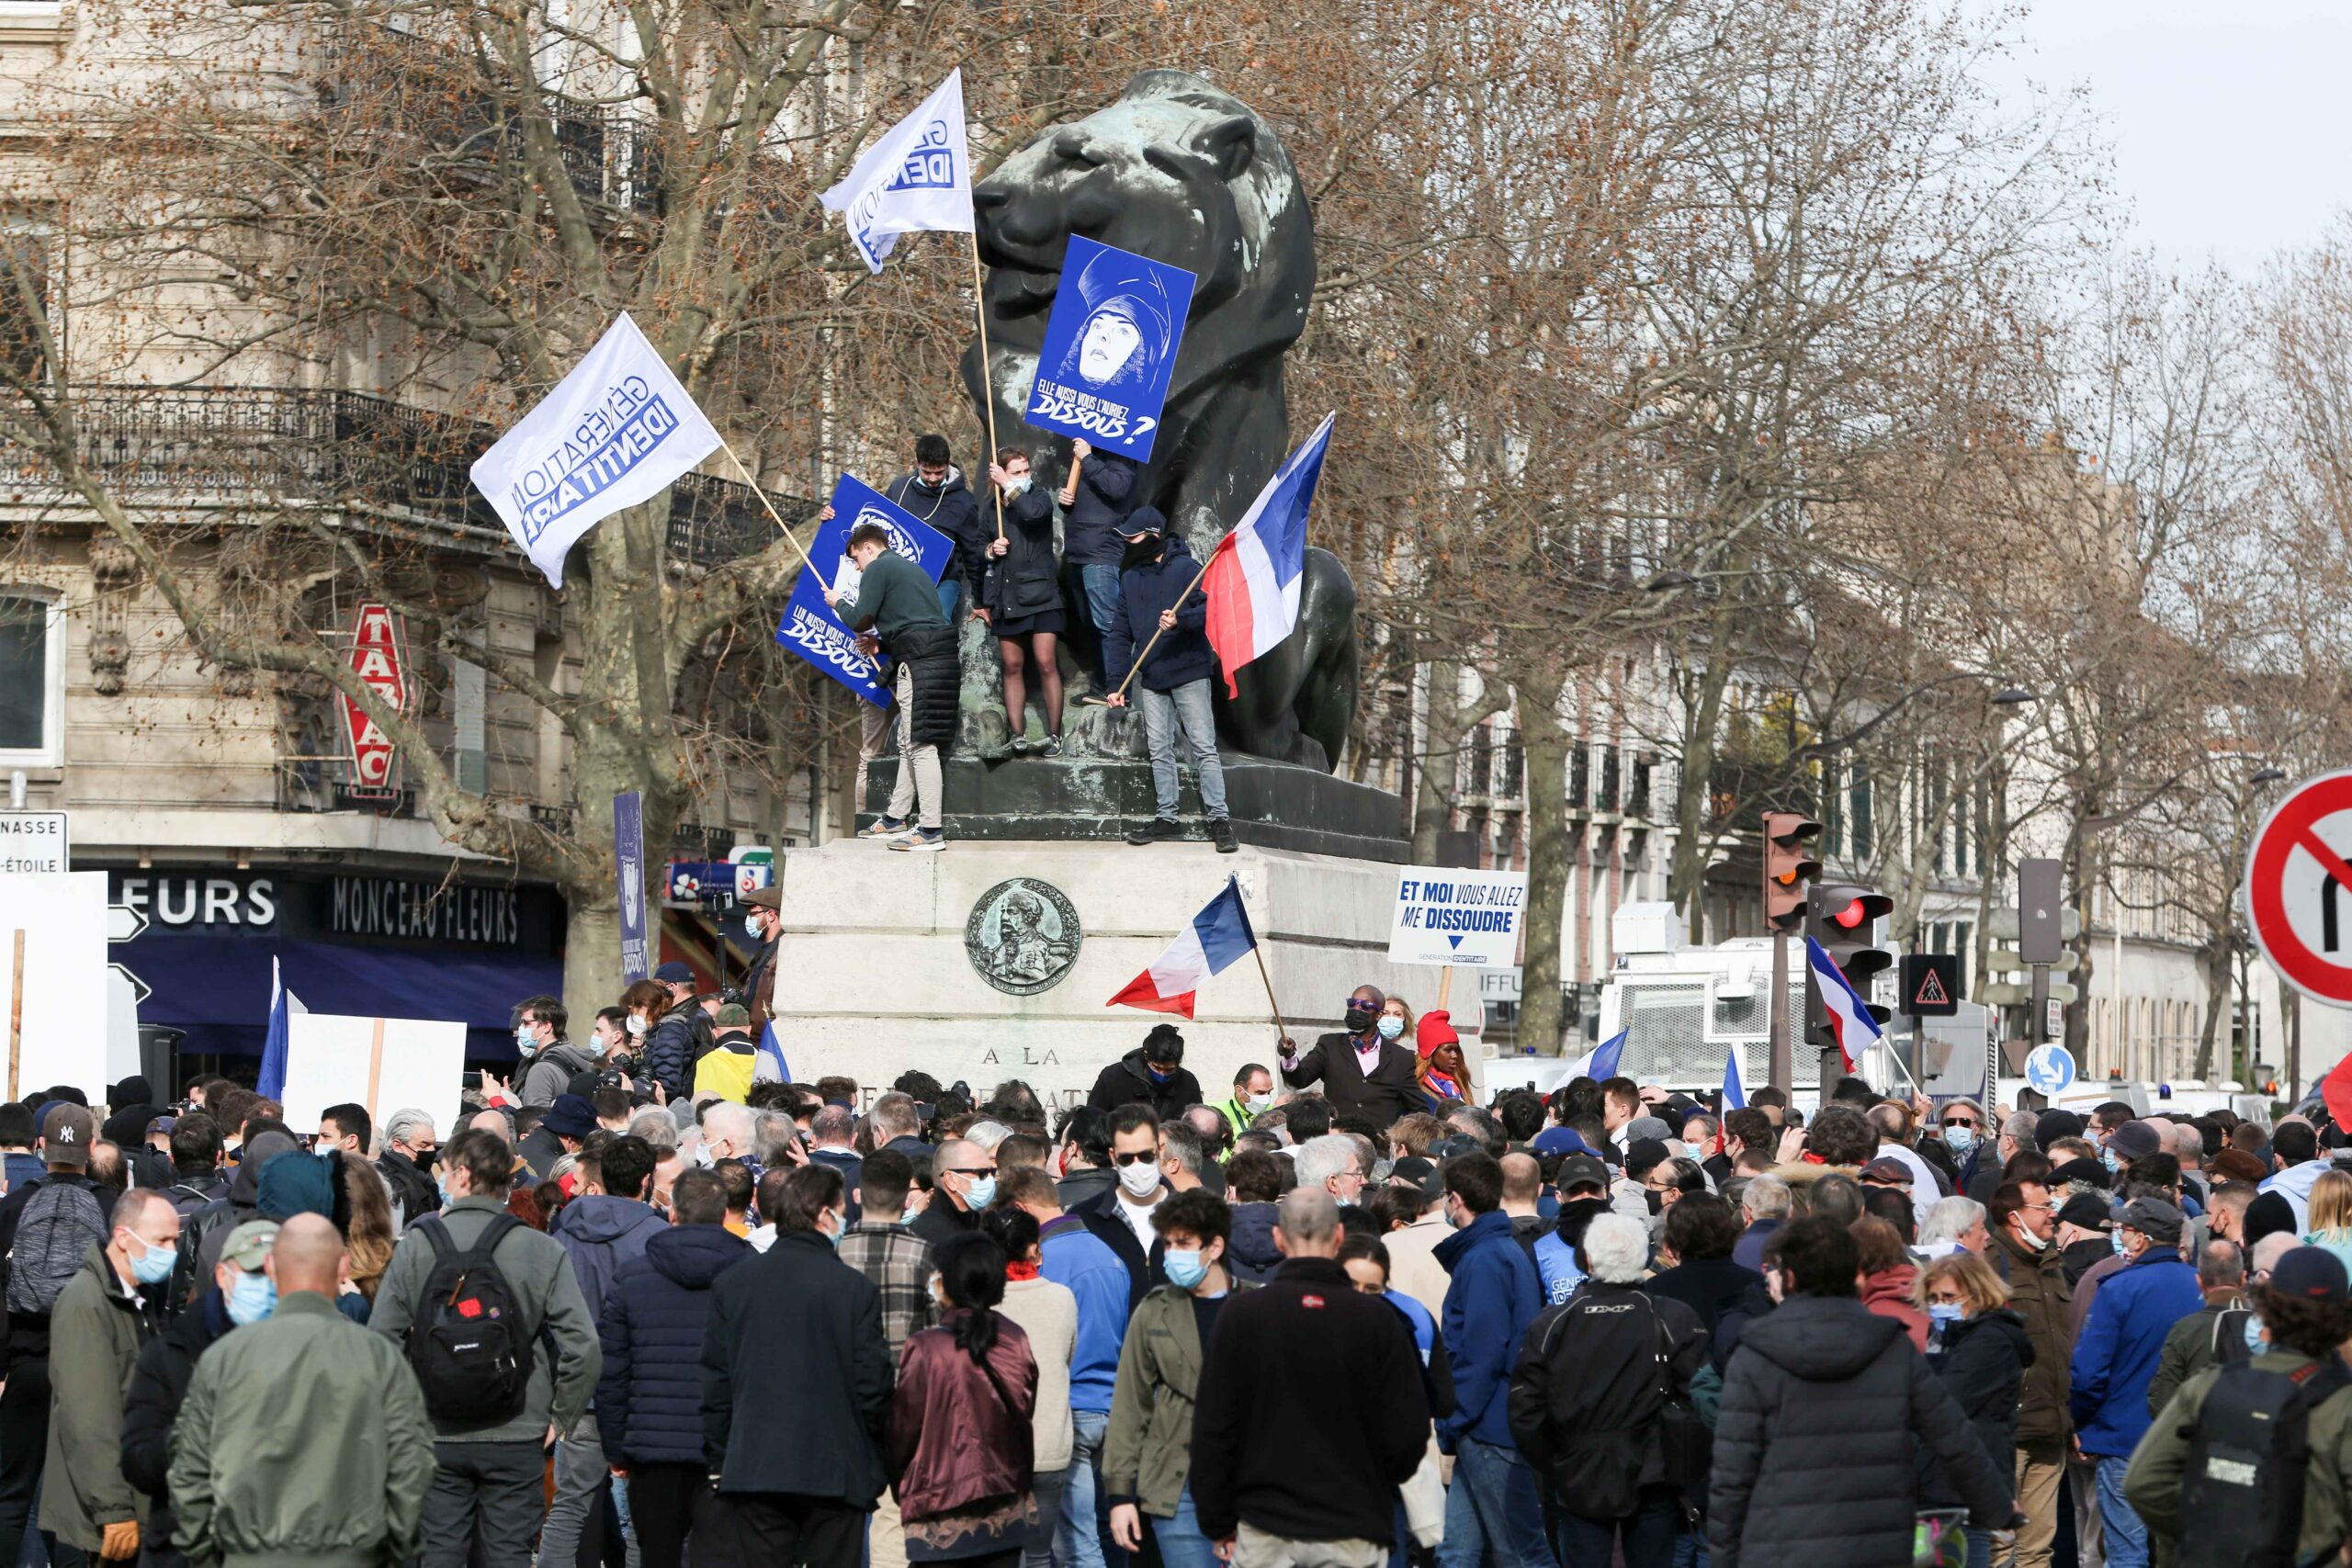 Members and supporters of far right group Generation Identitaire (GI) hold banners and placards during a protest against its potential dissolution in Place Denfert Rochereau, Paris on February 20, 2021. The dissolution of Generation identitaire was evoked